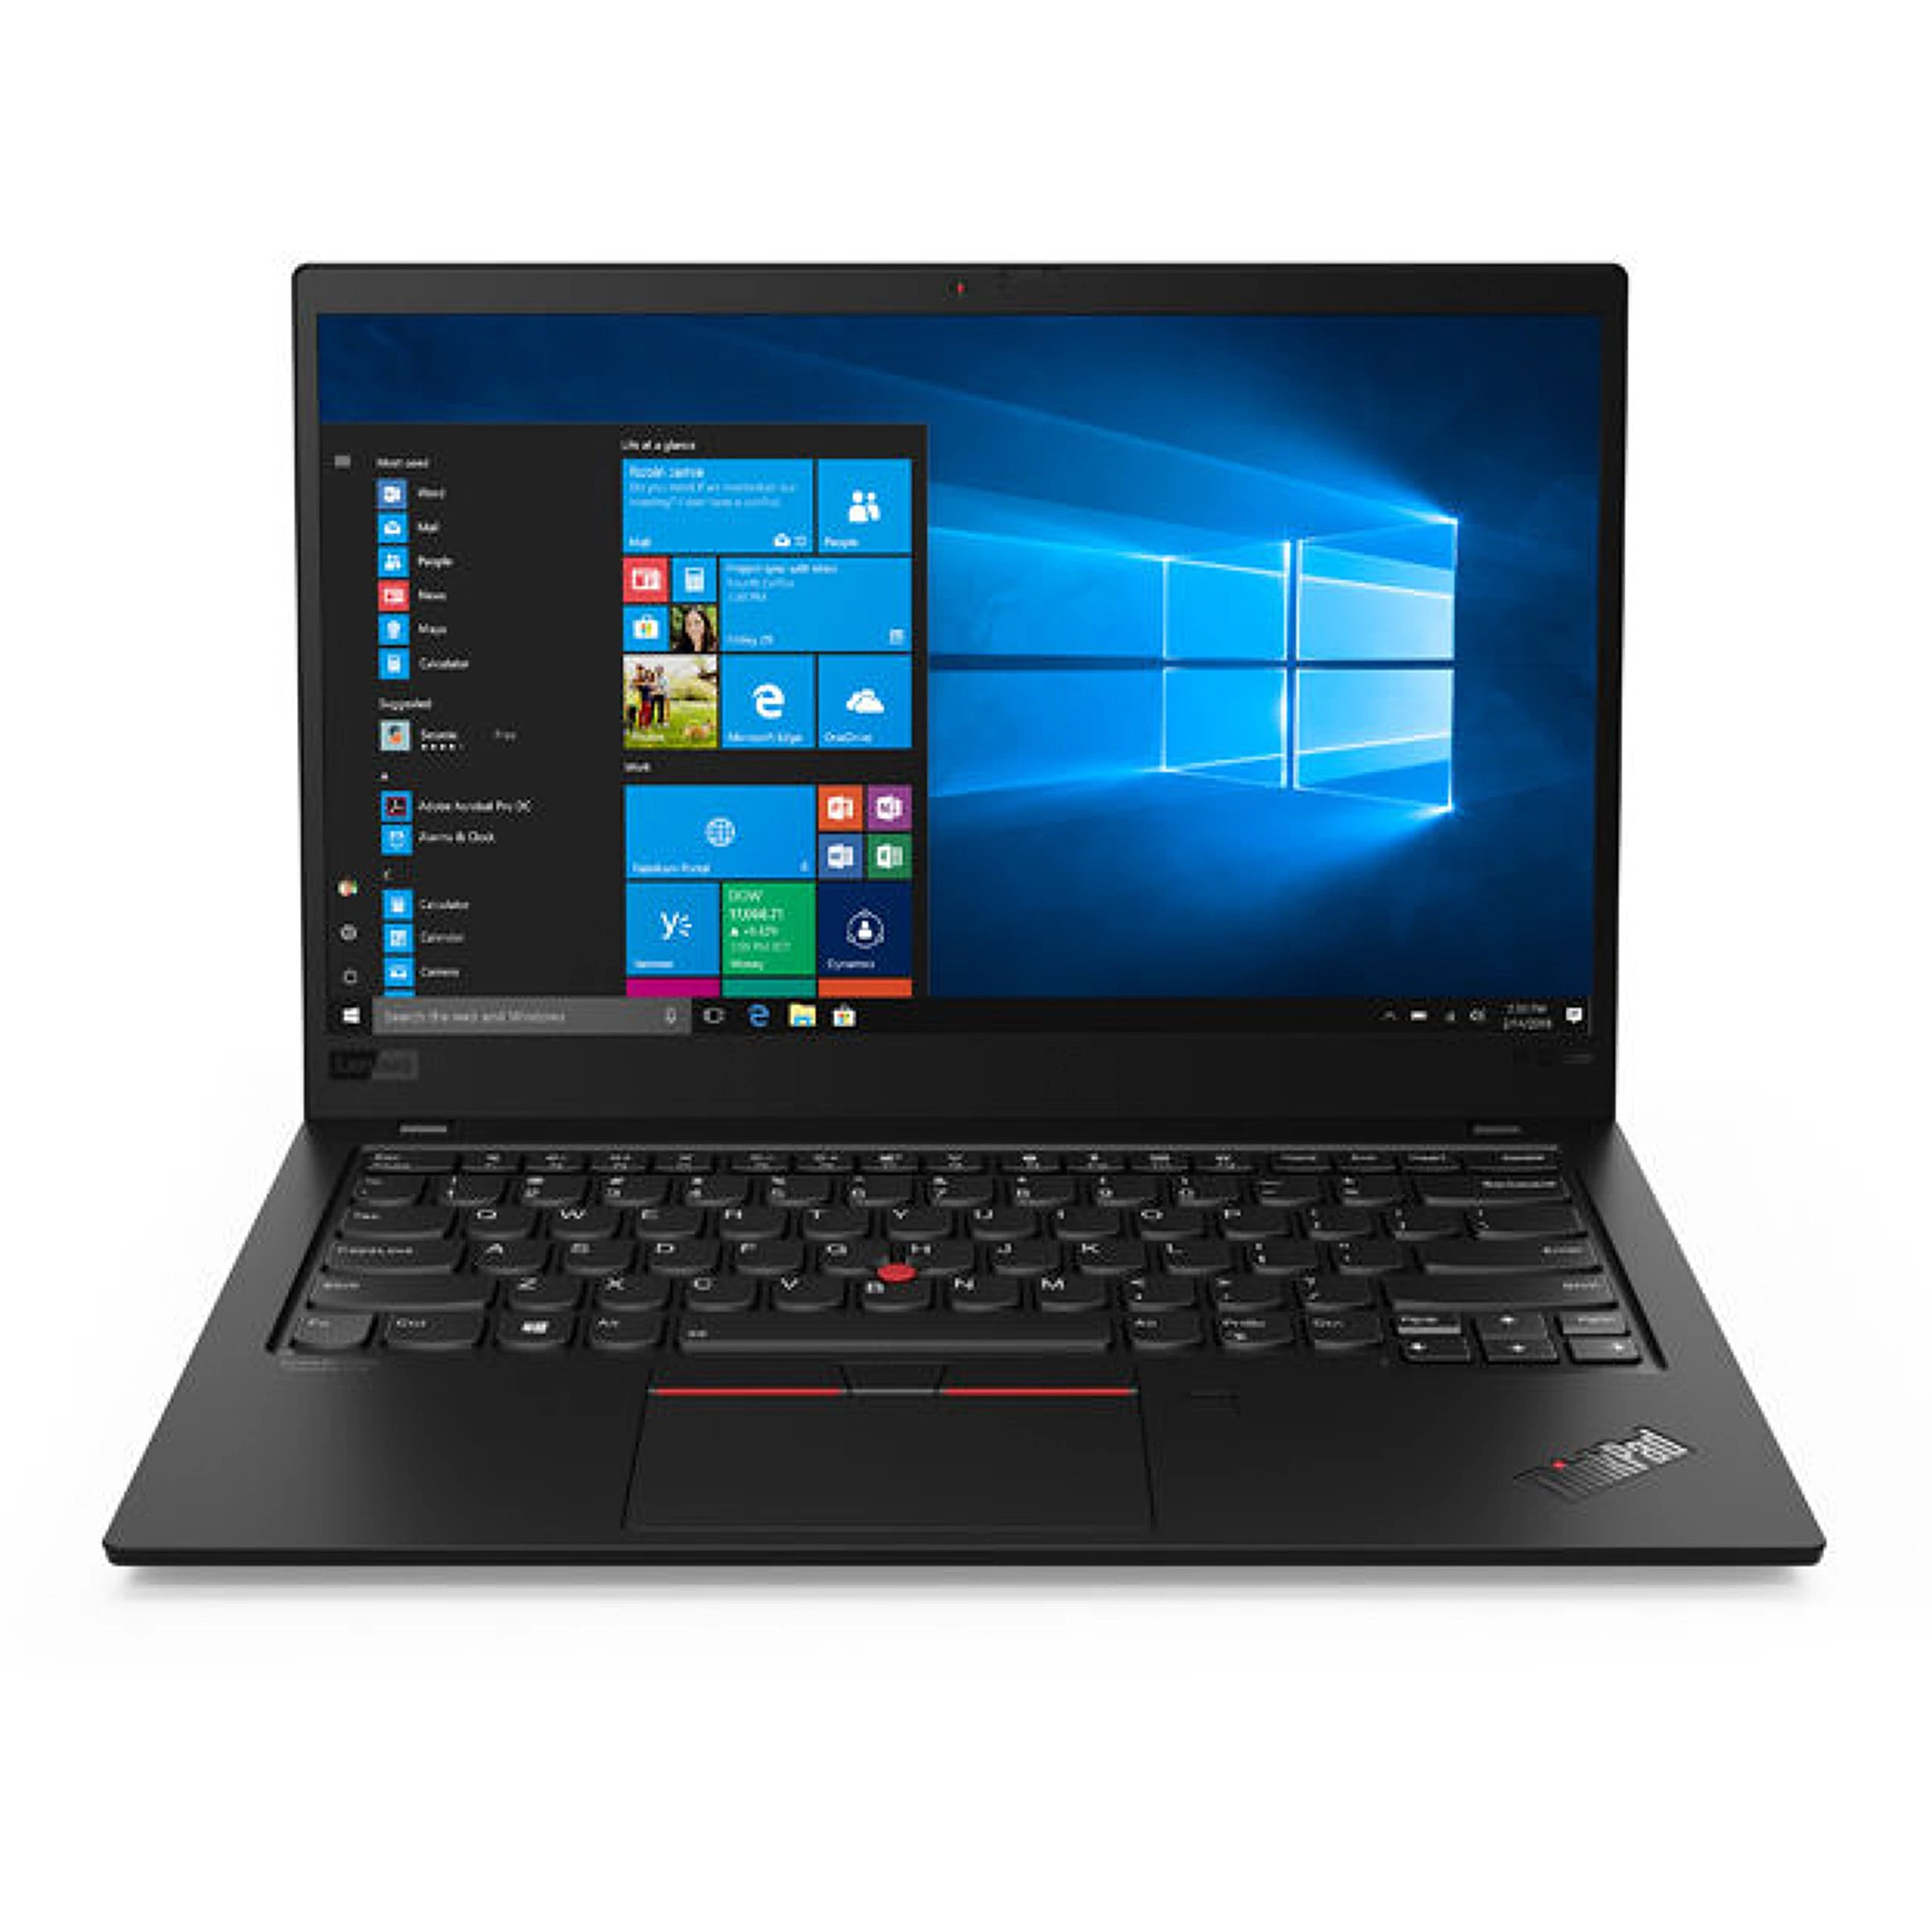 Lenovo ThinkPad X1 Carbon (7th Gen) Black, 14